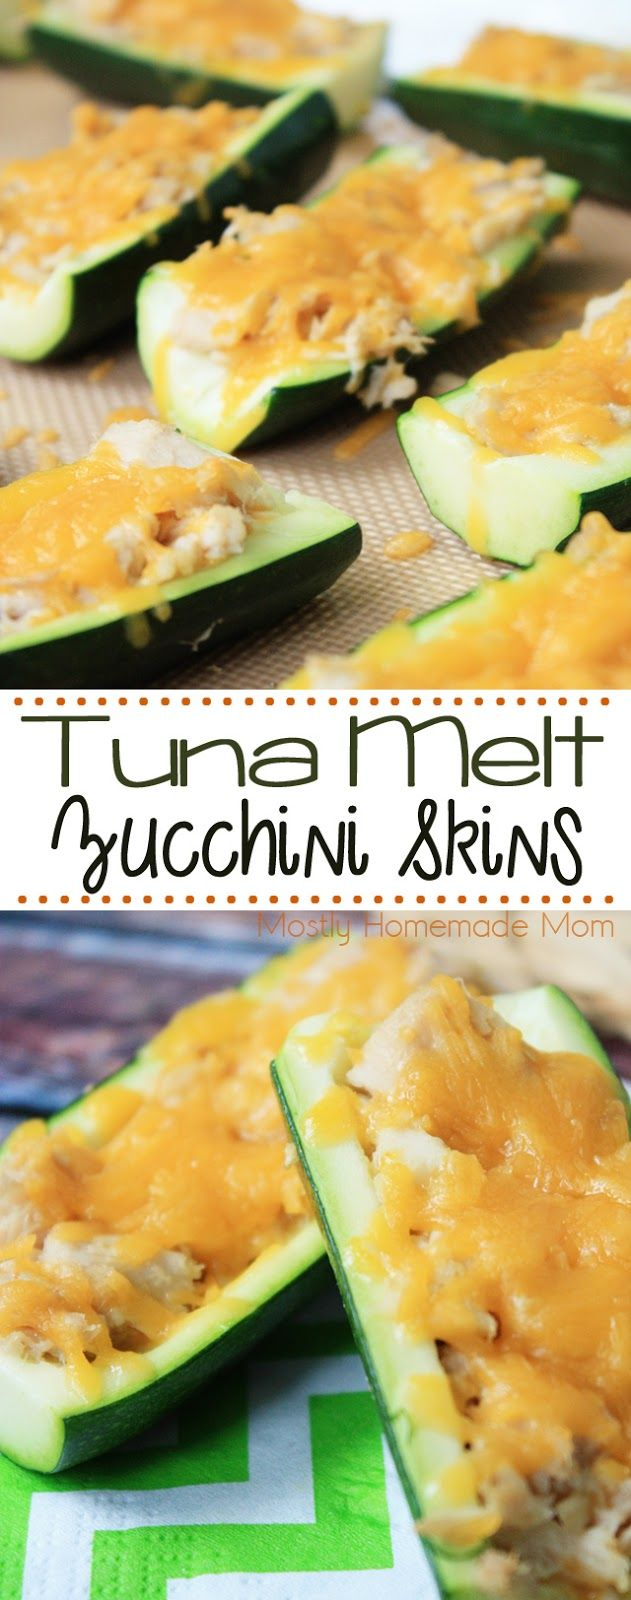 Tuna Melt Zucchini Skins - ready in under 15 minutes! Hollowed out zucchini slices stuffed with albacore tuna and melted cheddar cheese - these are perfect for lunch! @bumblebeefoods  OnlyAlbacore AD